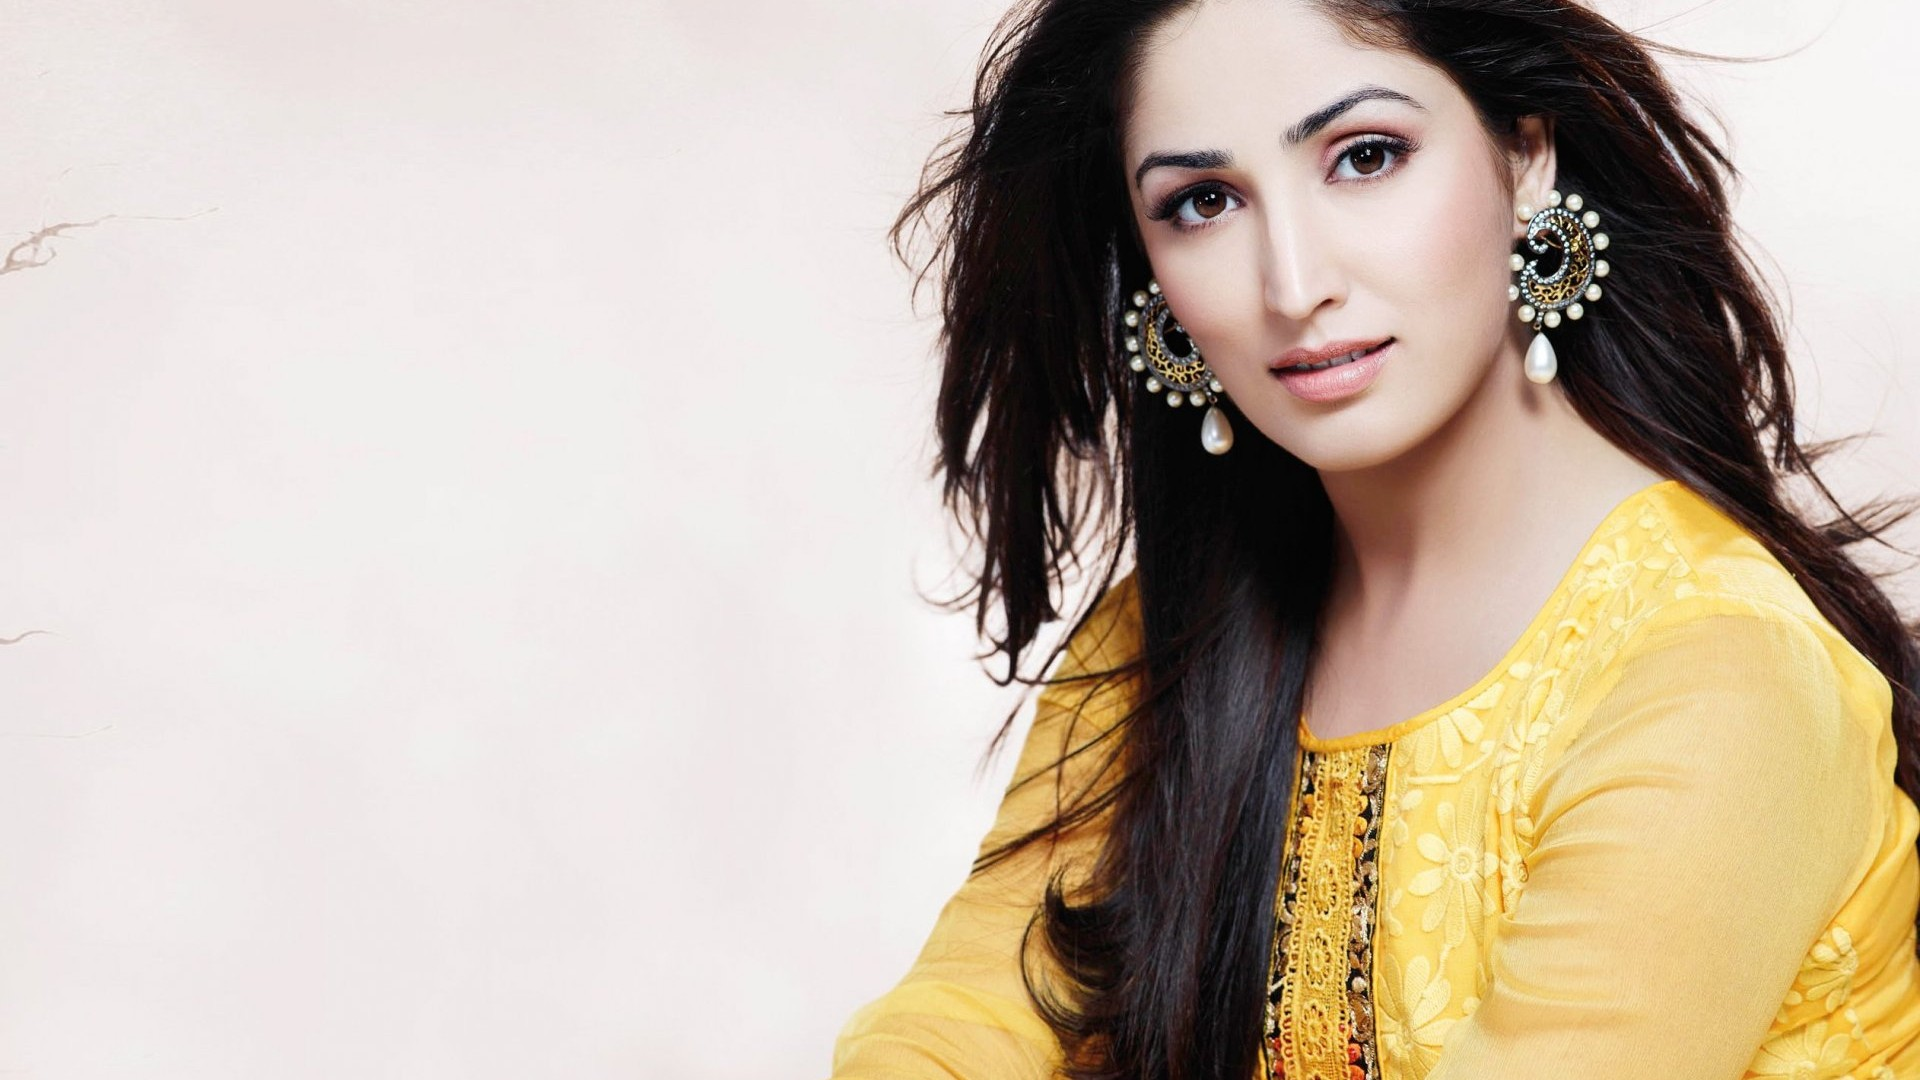 Indian Actresses Images Yami Gautam Hd Wallpaper And Background